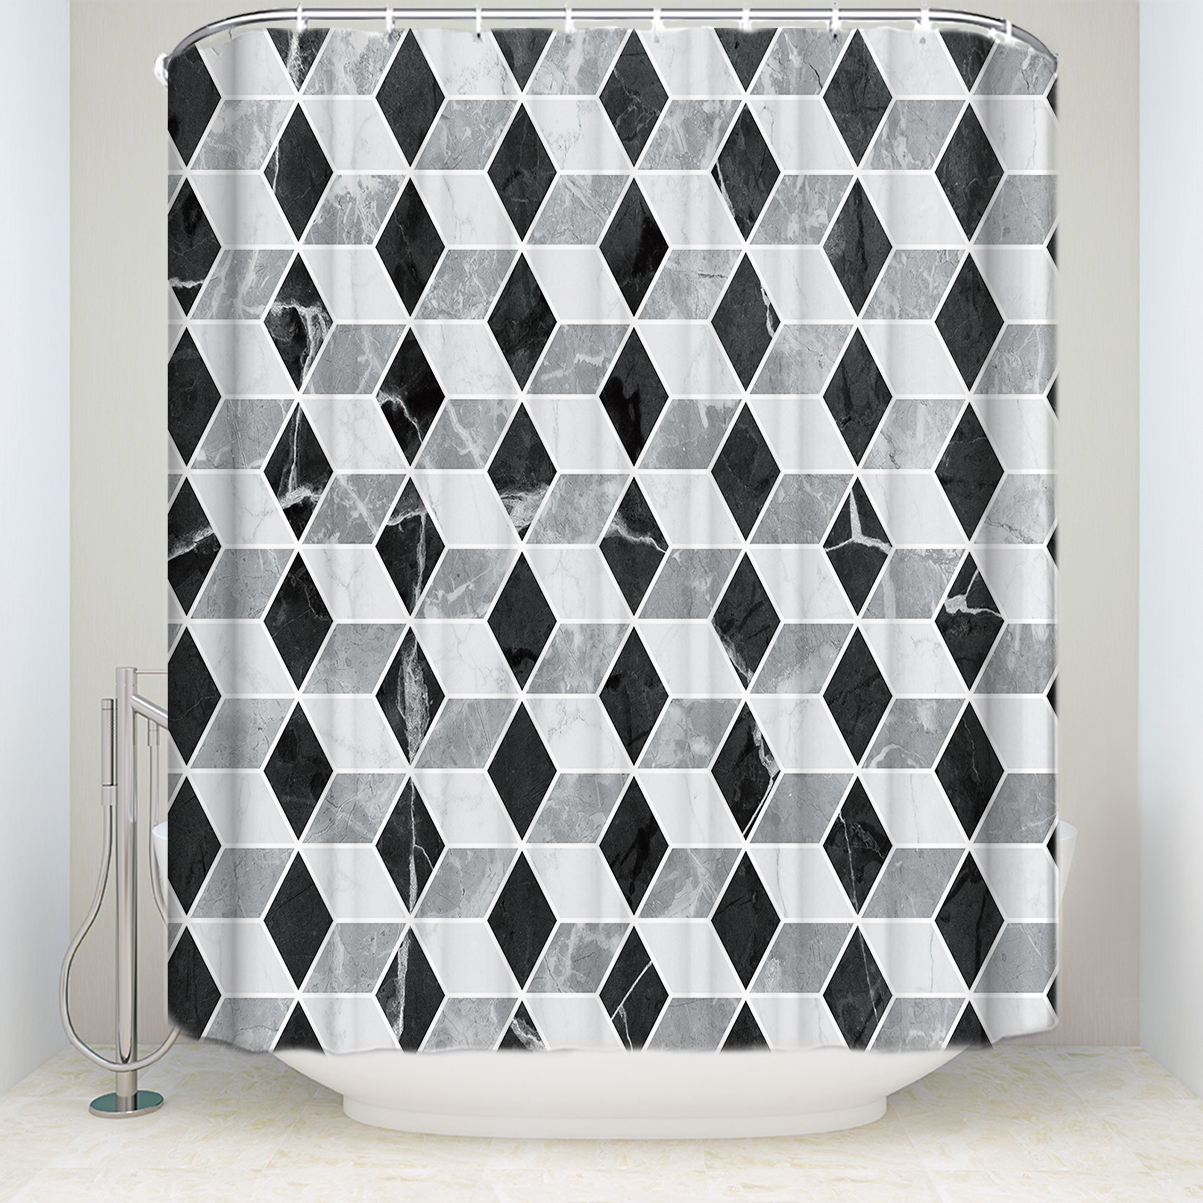 Waterproof Moroccan Pattern Geometric Shower Curtain Polyester Fabric Vintage Marble Mosaic Bathroom Curtains For Home Decor